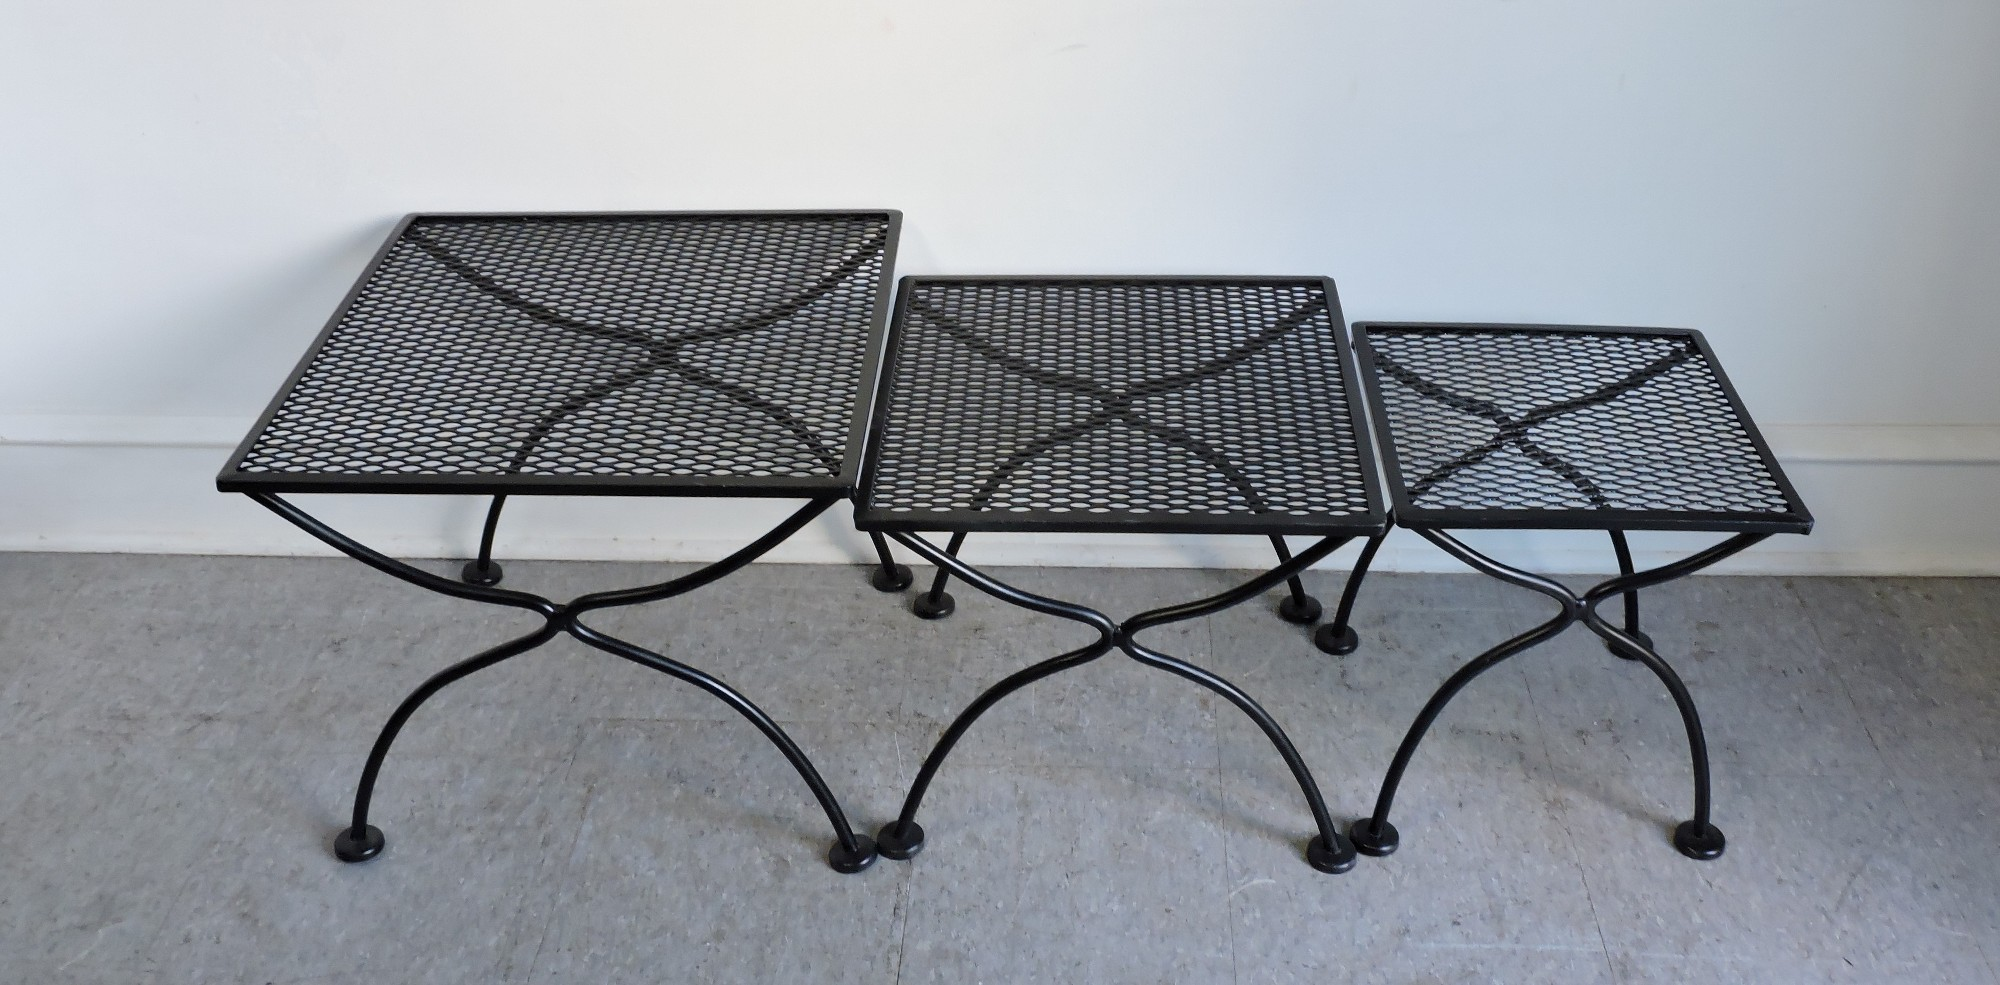 Beautiful Set Of 3 Salterini Wrought Iron Nesting Tables For The Patio Sy And Well Made These Have A Fresh Coat Black Paint